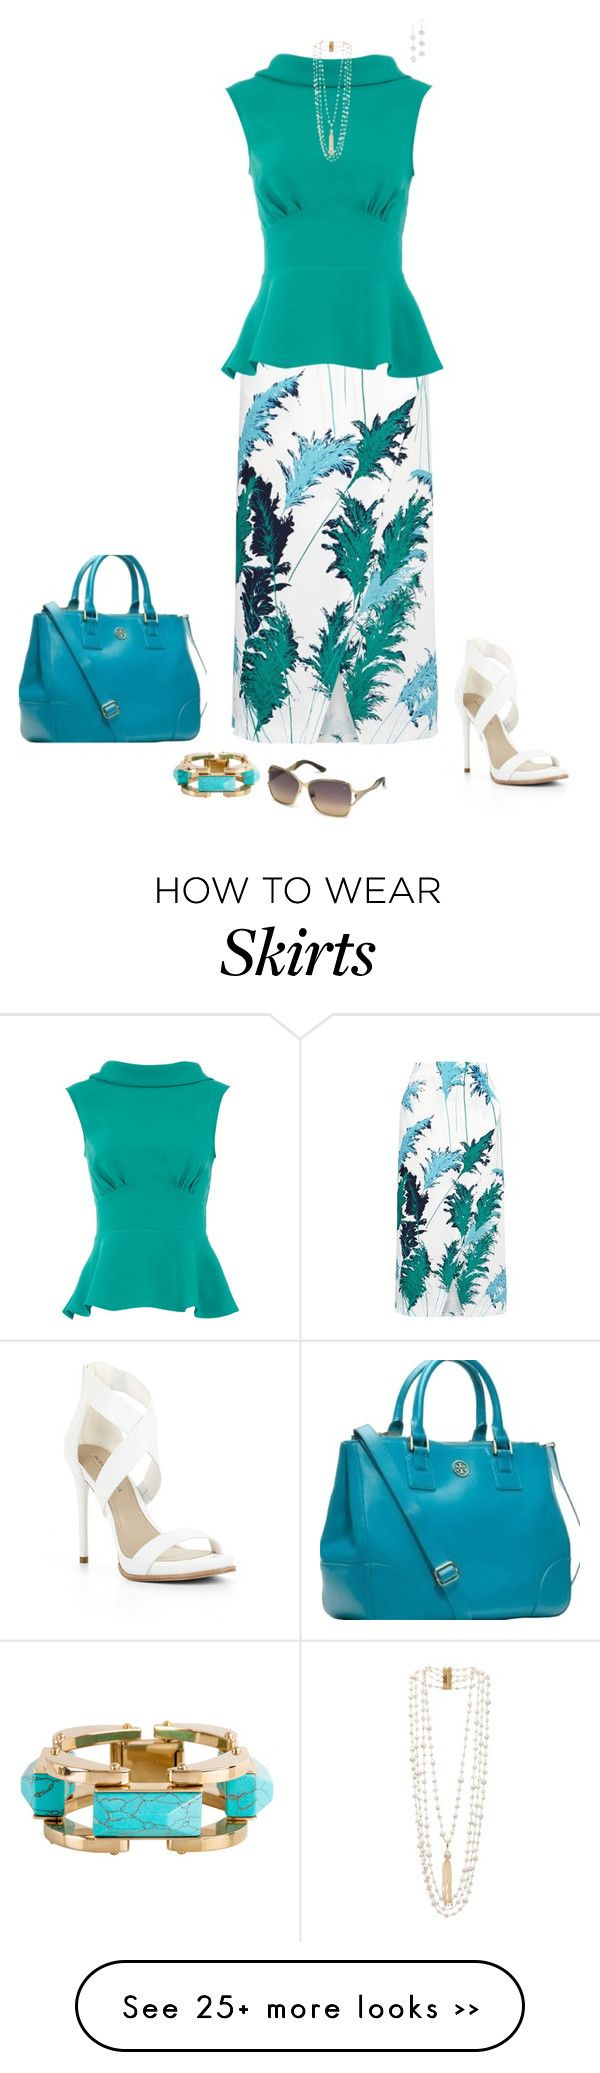 """Teal wrap skirt"" by julietajj on Polyvore"